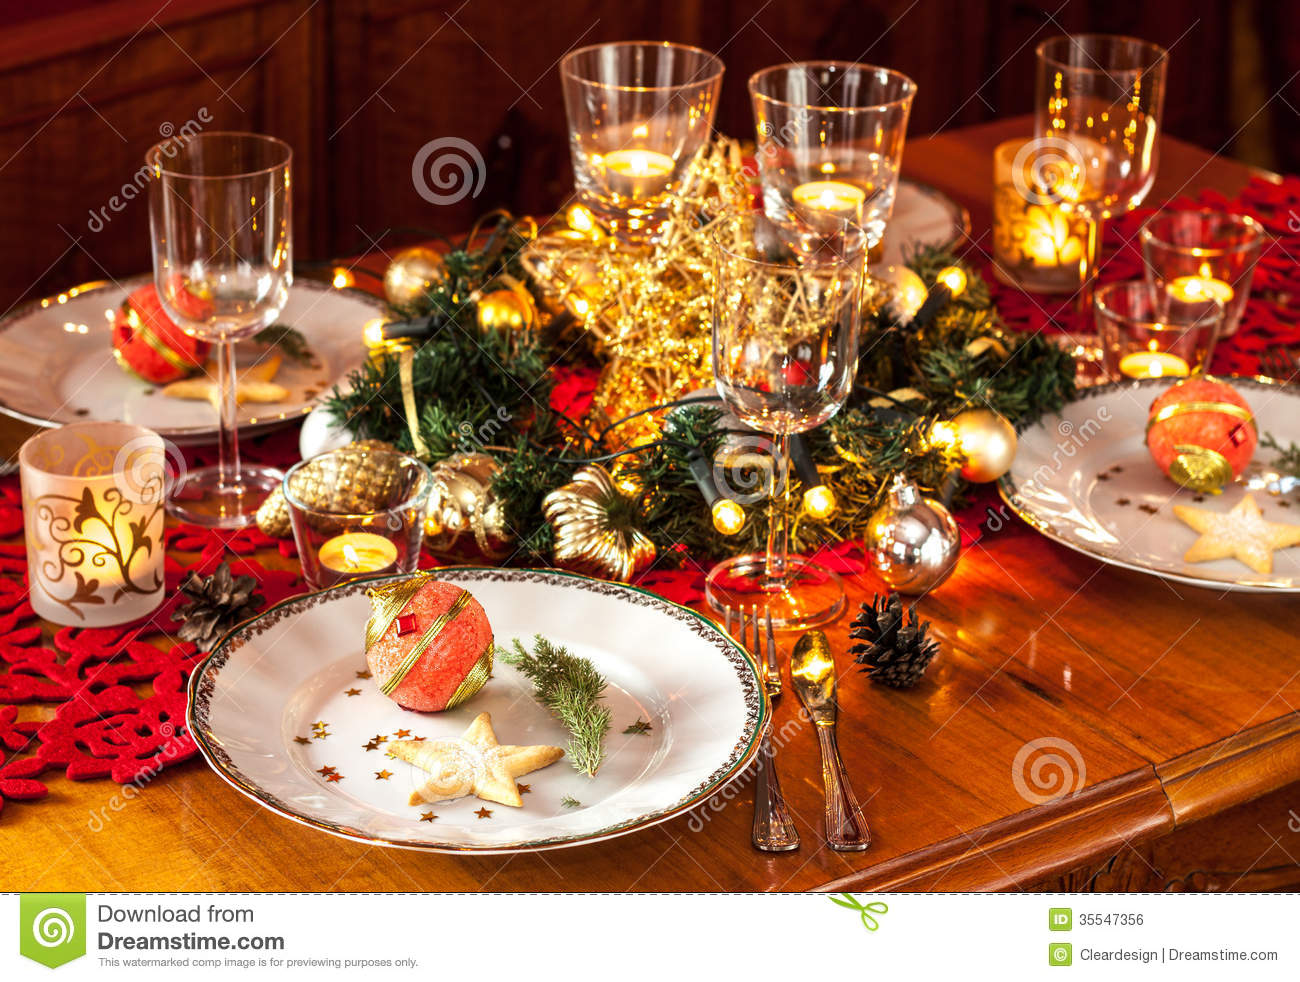 Arrangement de table de d ner de r veillon de no l avec - Decoration table reveillon jour de l an ...